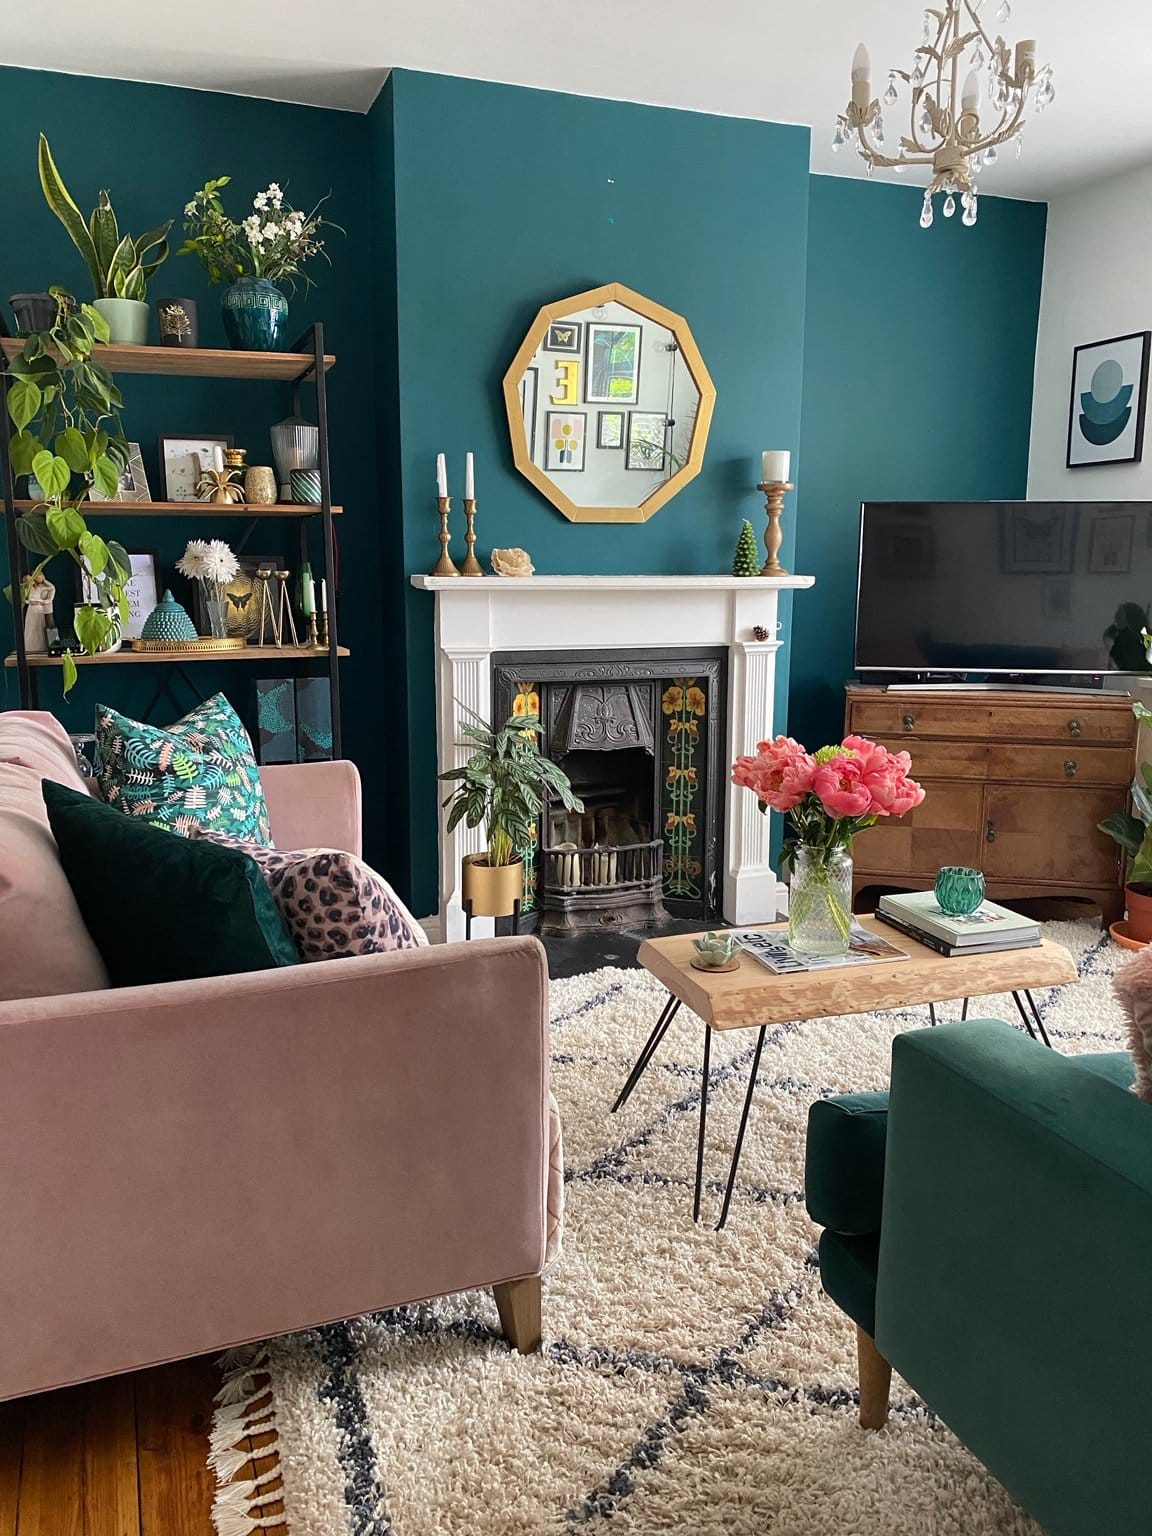 How To Use Dark Green in Your Living Room - Melanie Jade Design